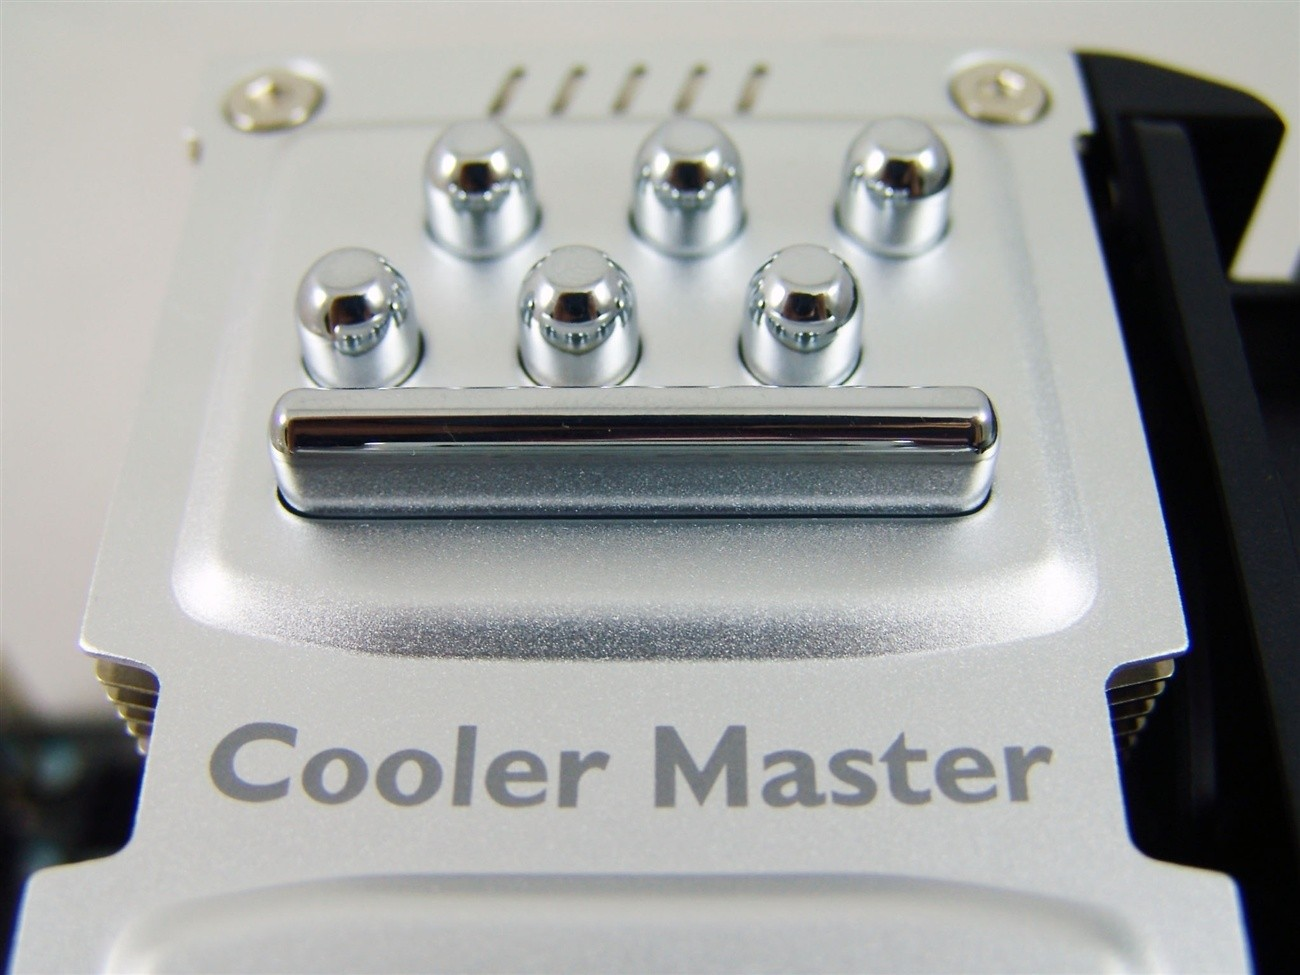 cooler_master_tpc_812_vapor_chamber_cpu_cooler_review